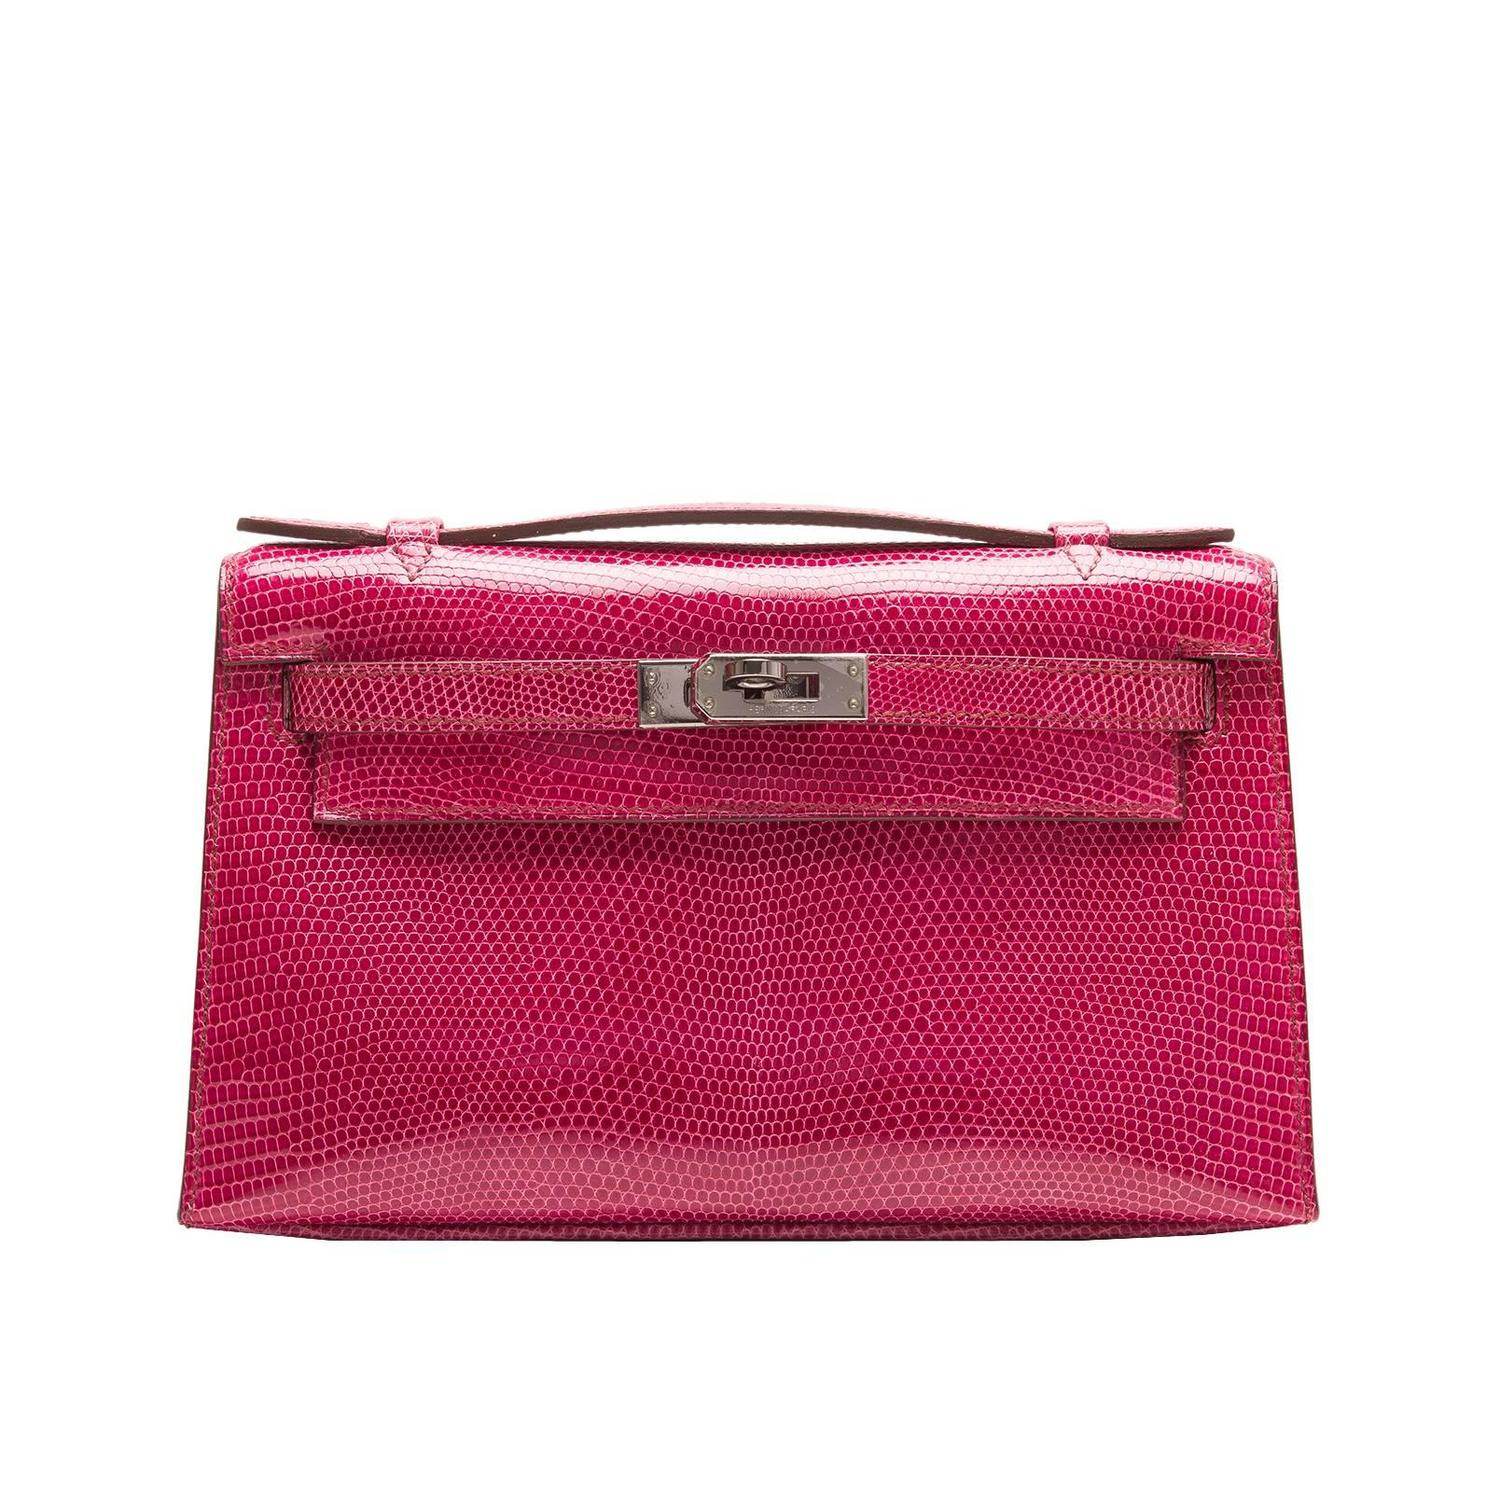 hermes capucine kelly pochette swift palladium hardware